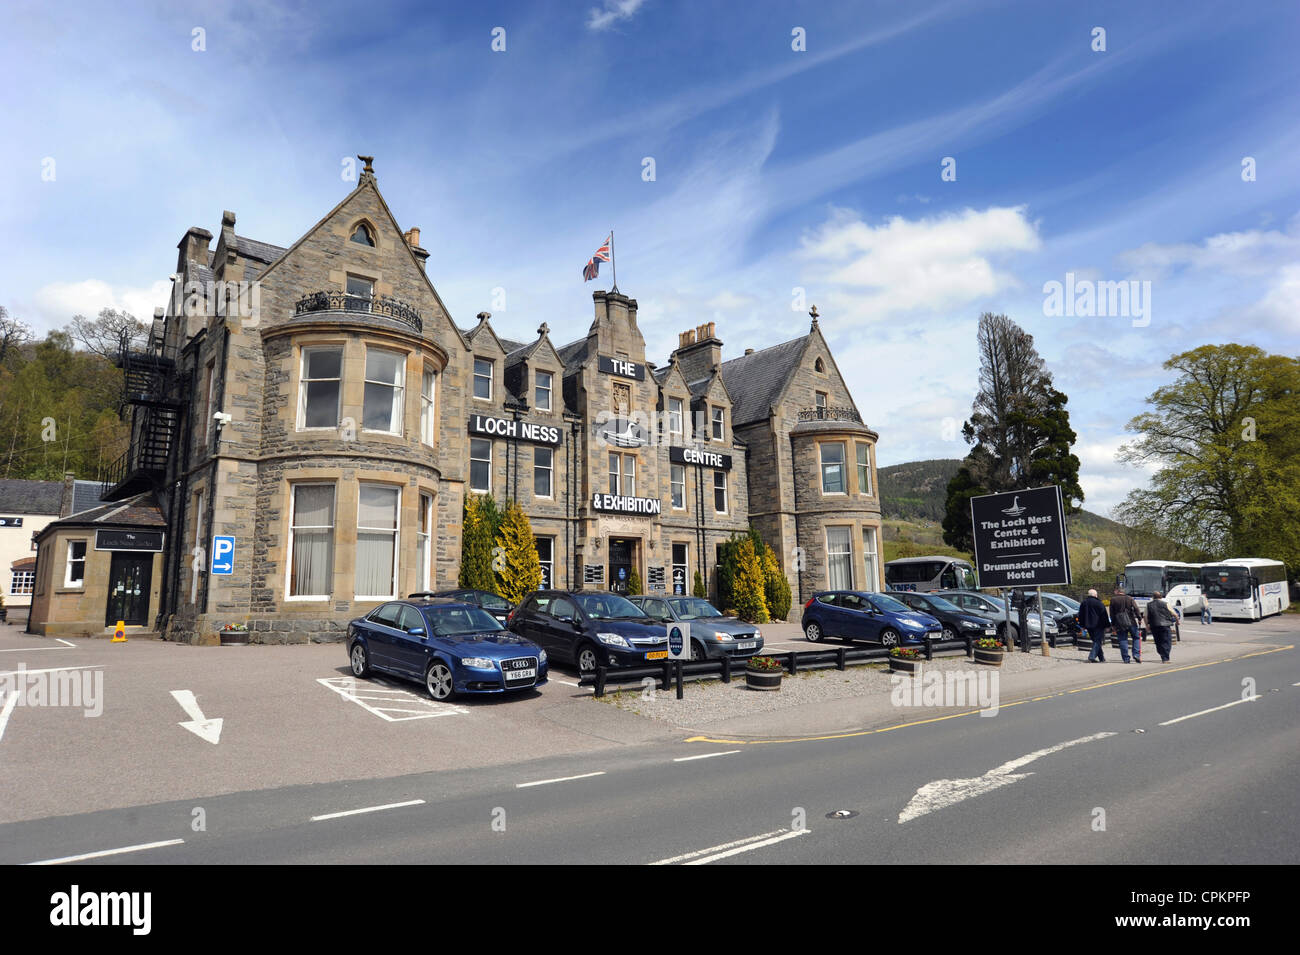 THE LOCH NESS CENTRE AND EXHIBITION AT DRUMNADROCHIT SCOTLAND RE NESSIE LOCH NESS MONSTER TOURISM SIGHTINGS HOLIDAY - Stock Image